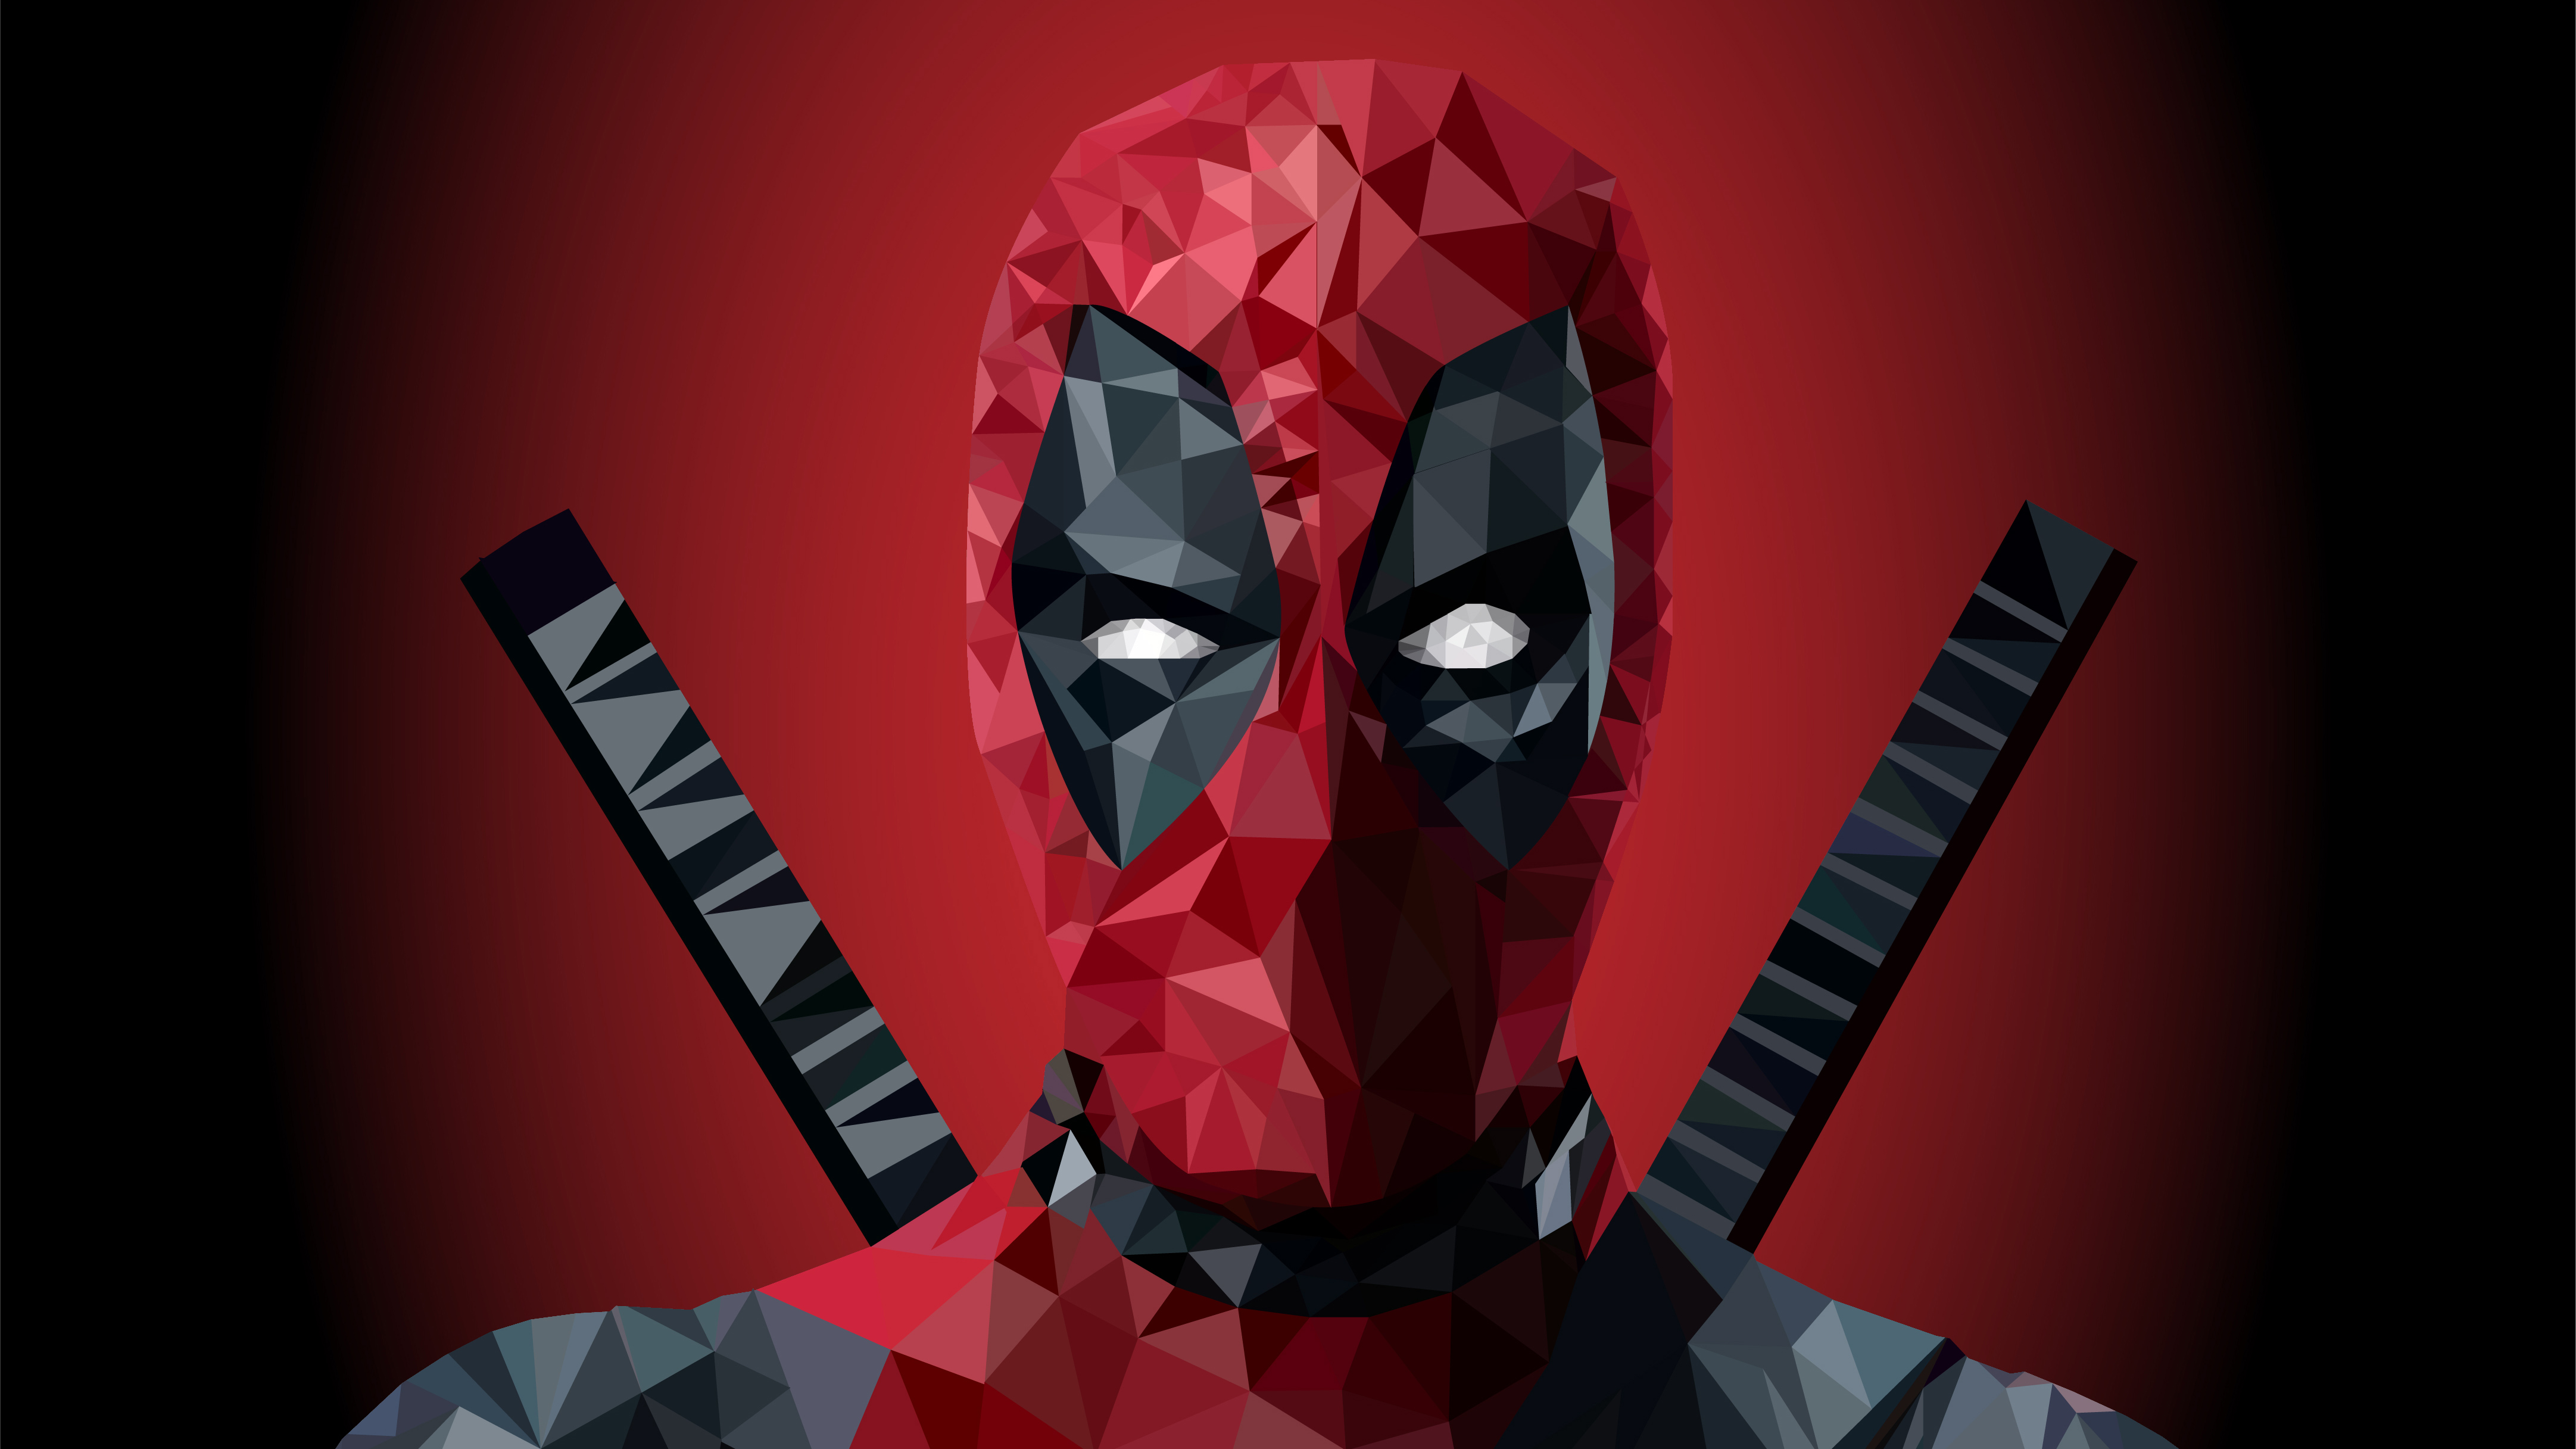 1920x1080 Deadpool Low Poly Art 4k Laptop Full HD 1080P HD ...